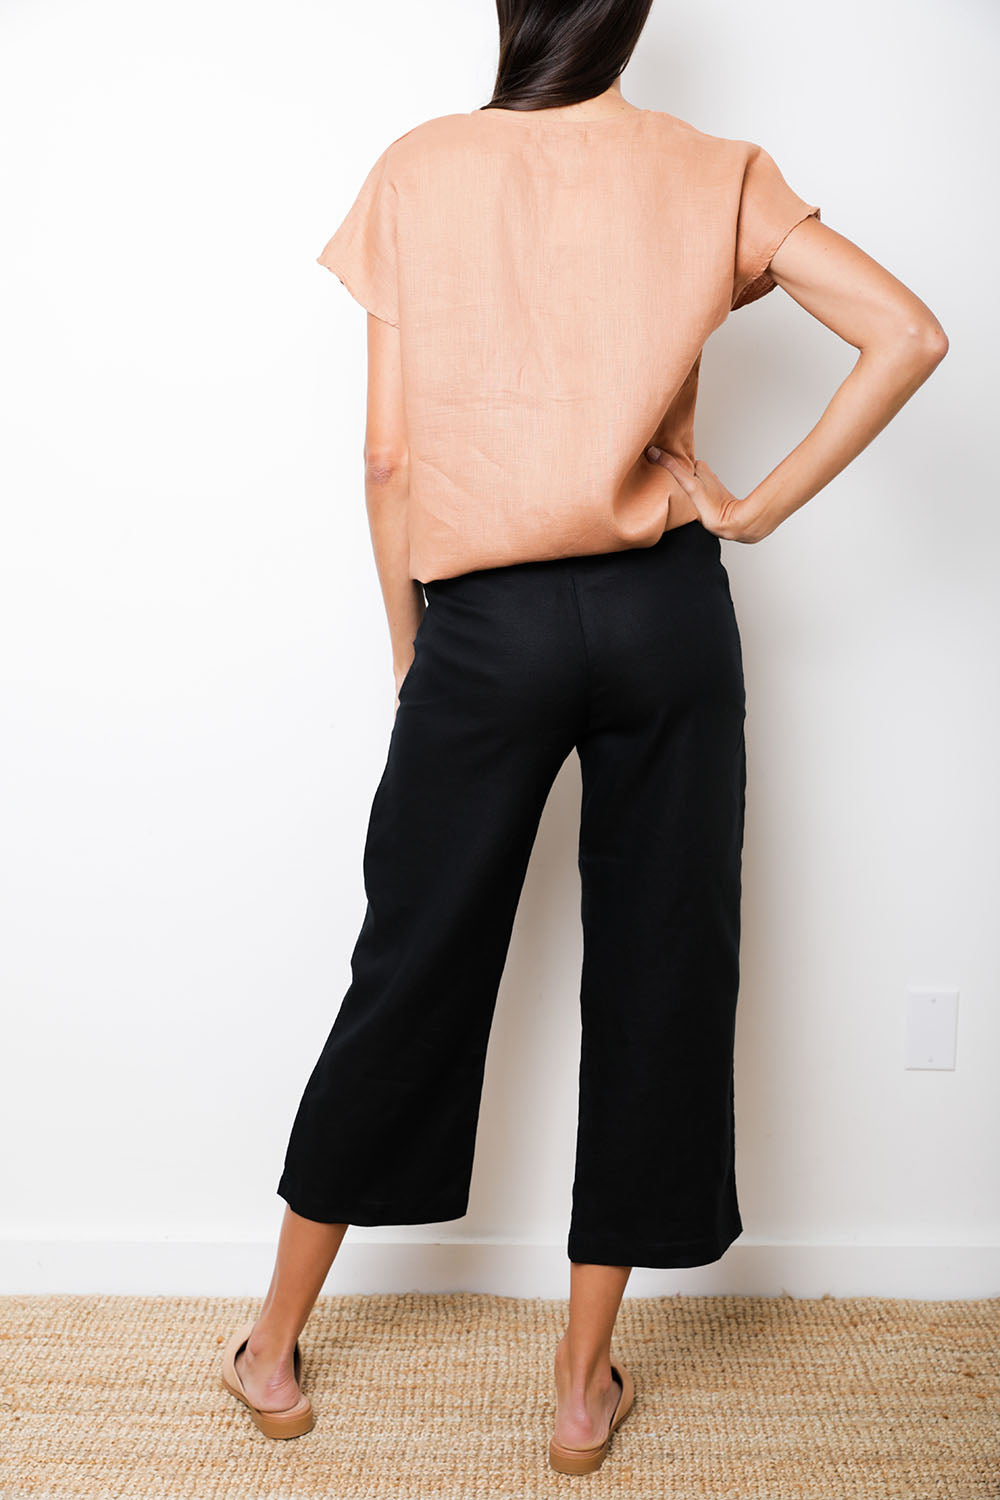 Artic Pant in Black Linen